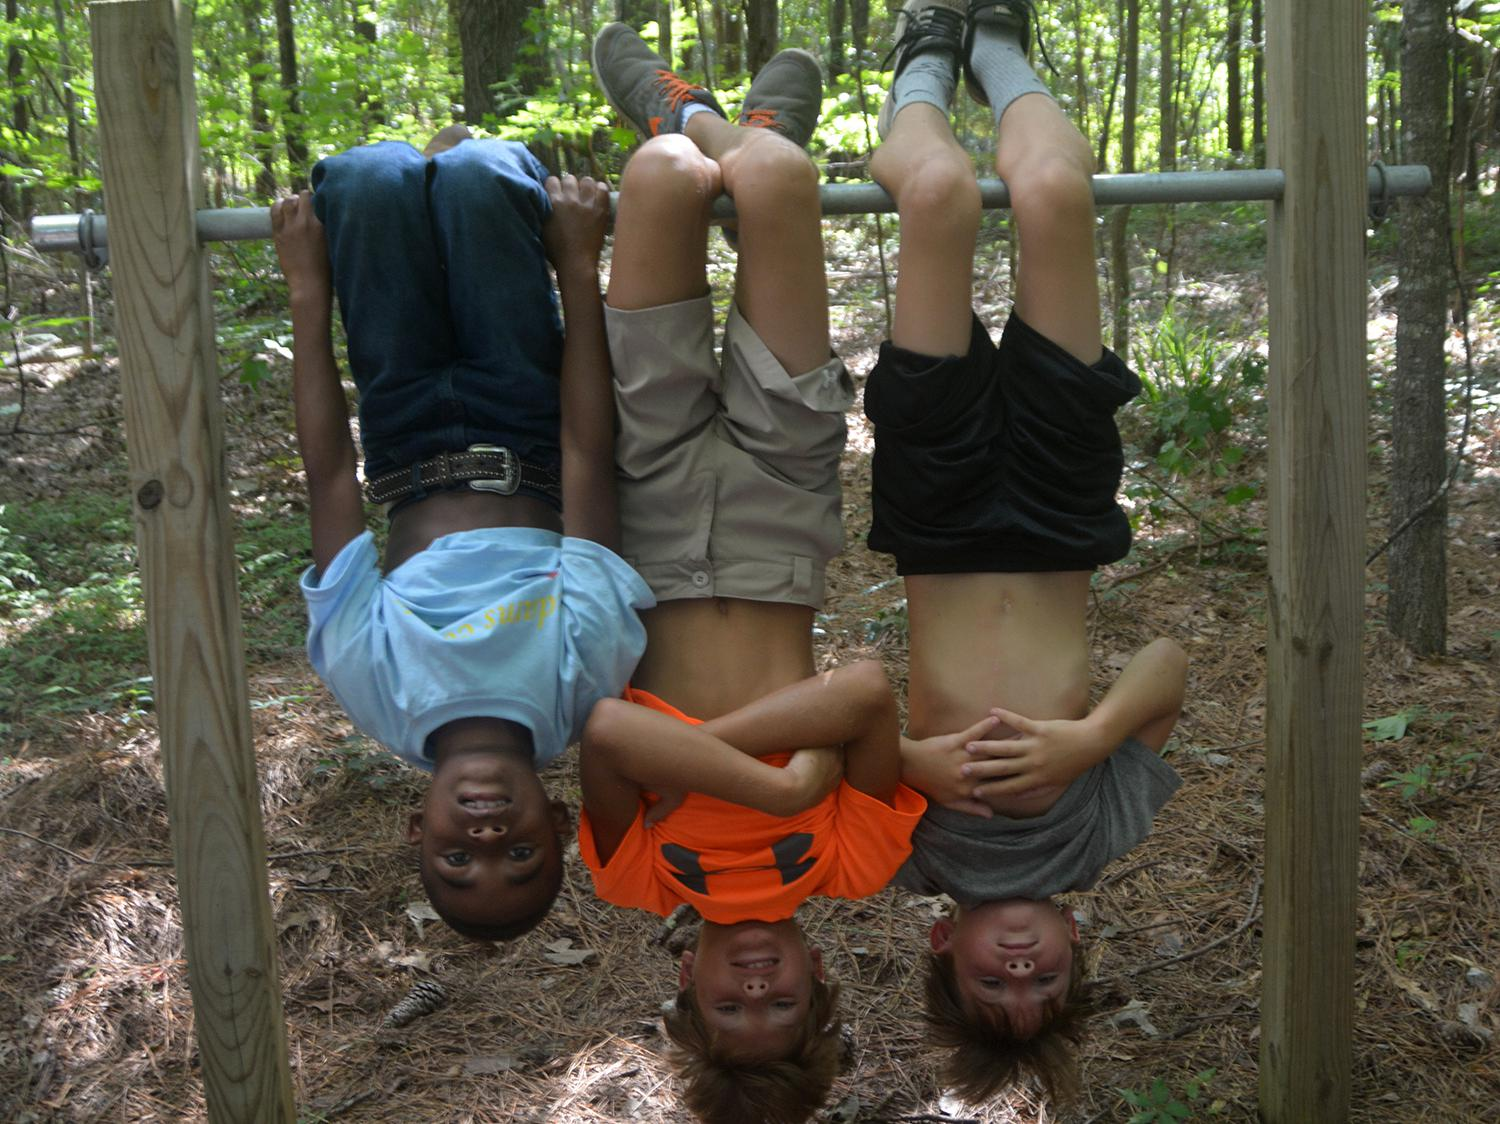 Imitating bats that like to hang upside down is a fun activity for children as they explore a nature trail at St. Catherine Creek National Wildlife Refuge near Natchez, Mississippi, on July 7, 2016. (Photo by MSU Extension Service/Linda Breazeale)